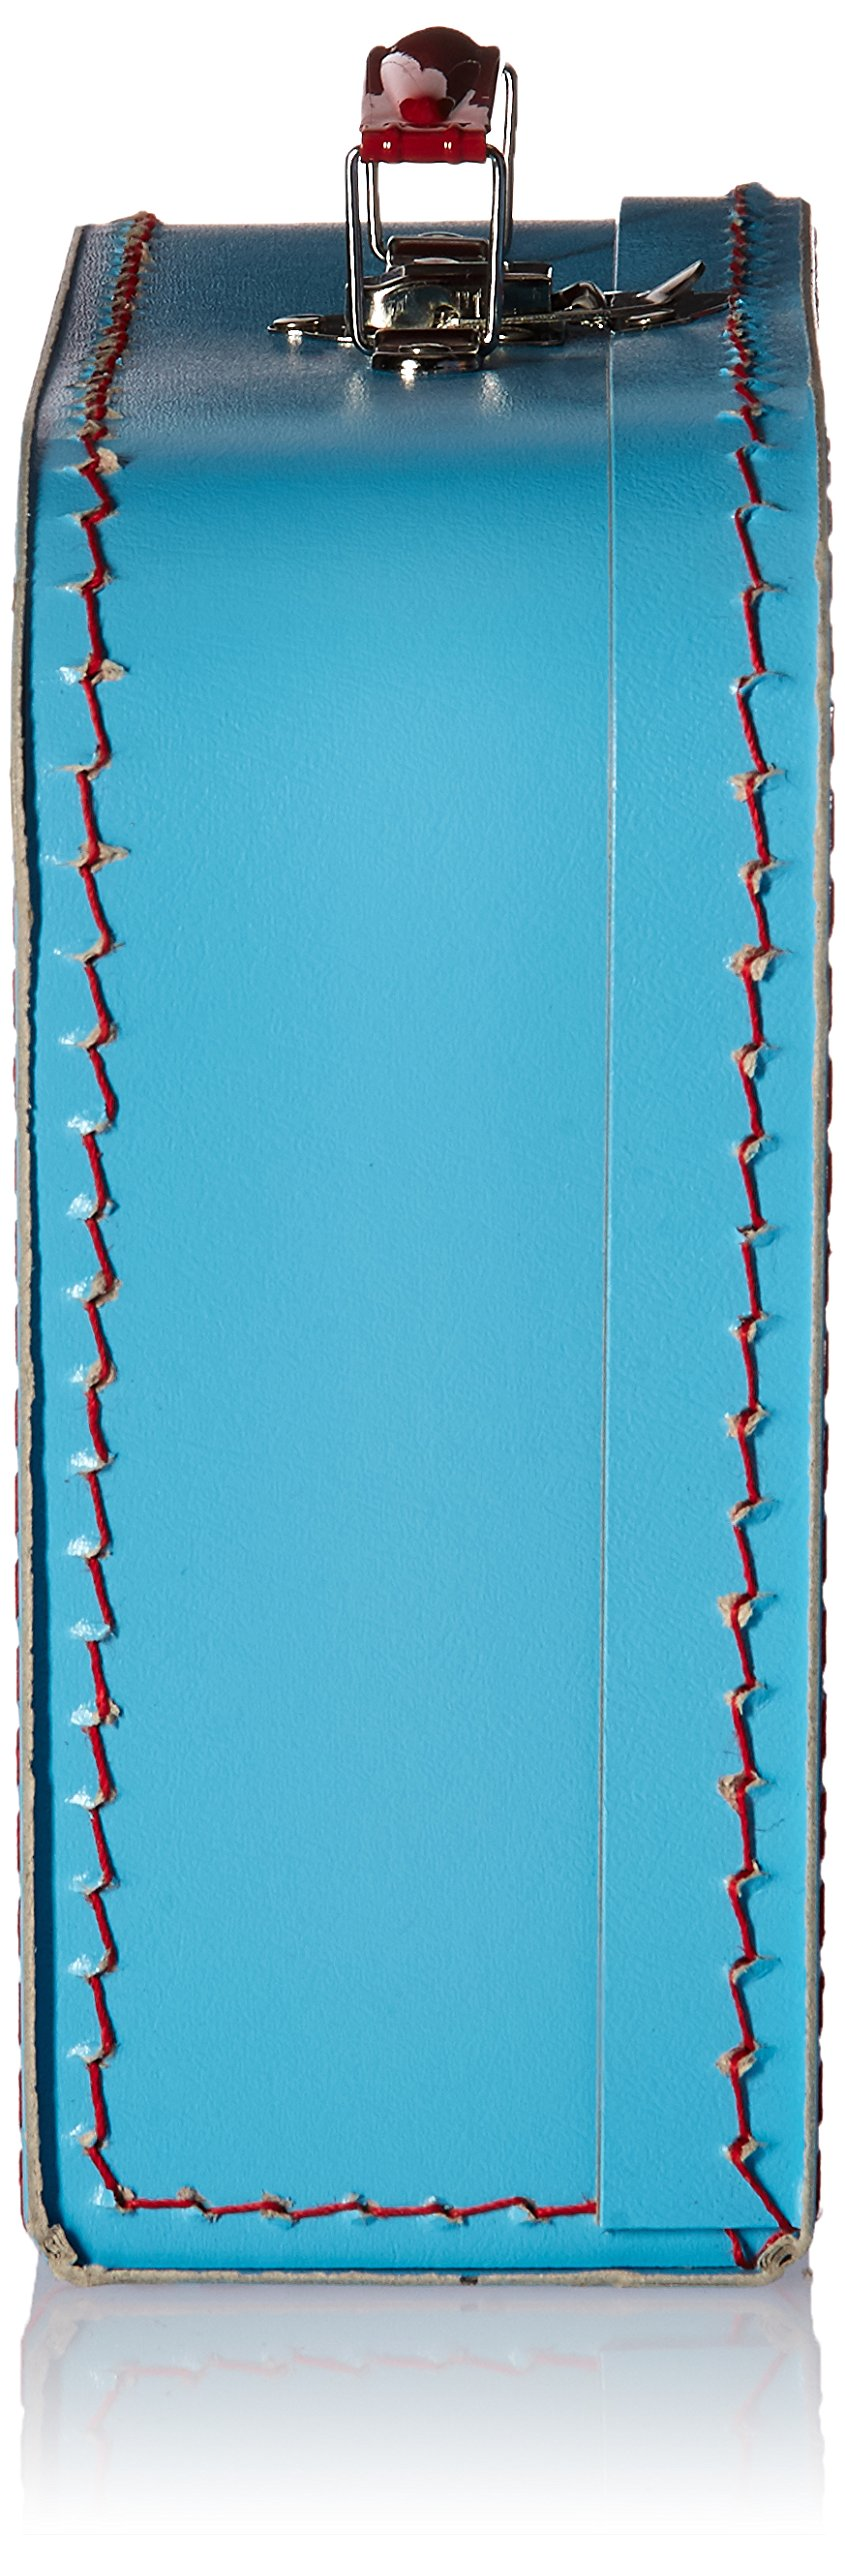 Cargo Cool Euro Suitcases, Soft Blue, Set of 3 by cargo (Image #4)